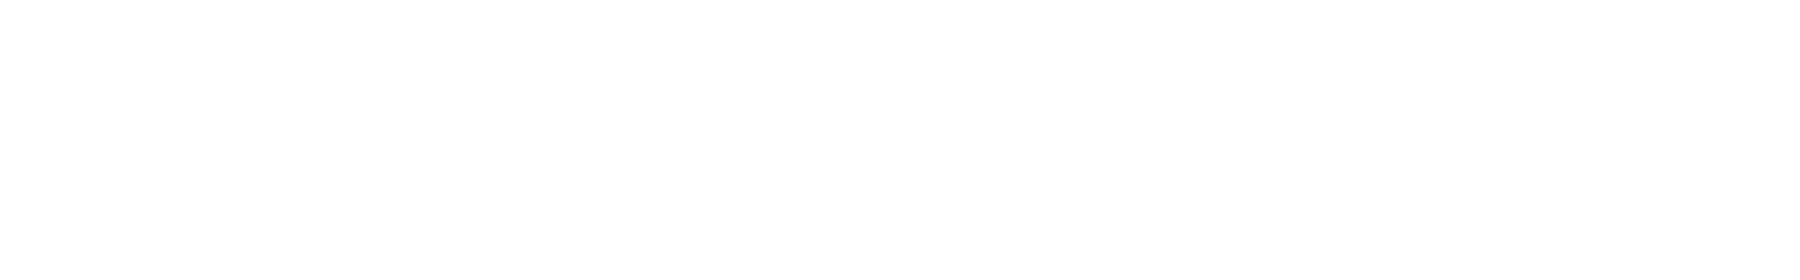 veh1 cutted sounds   067